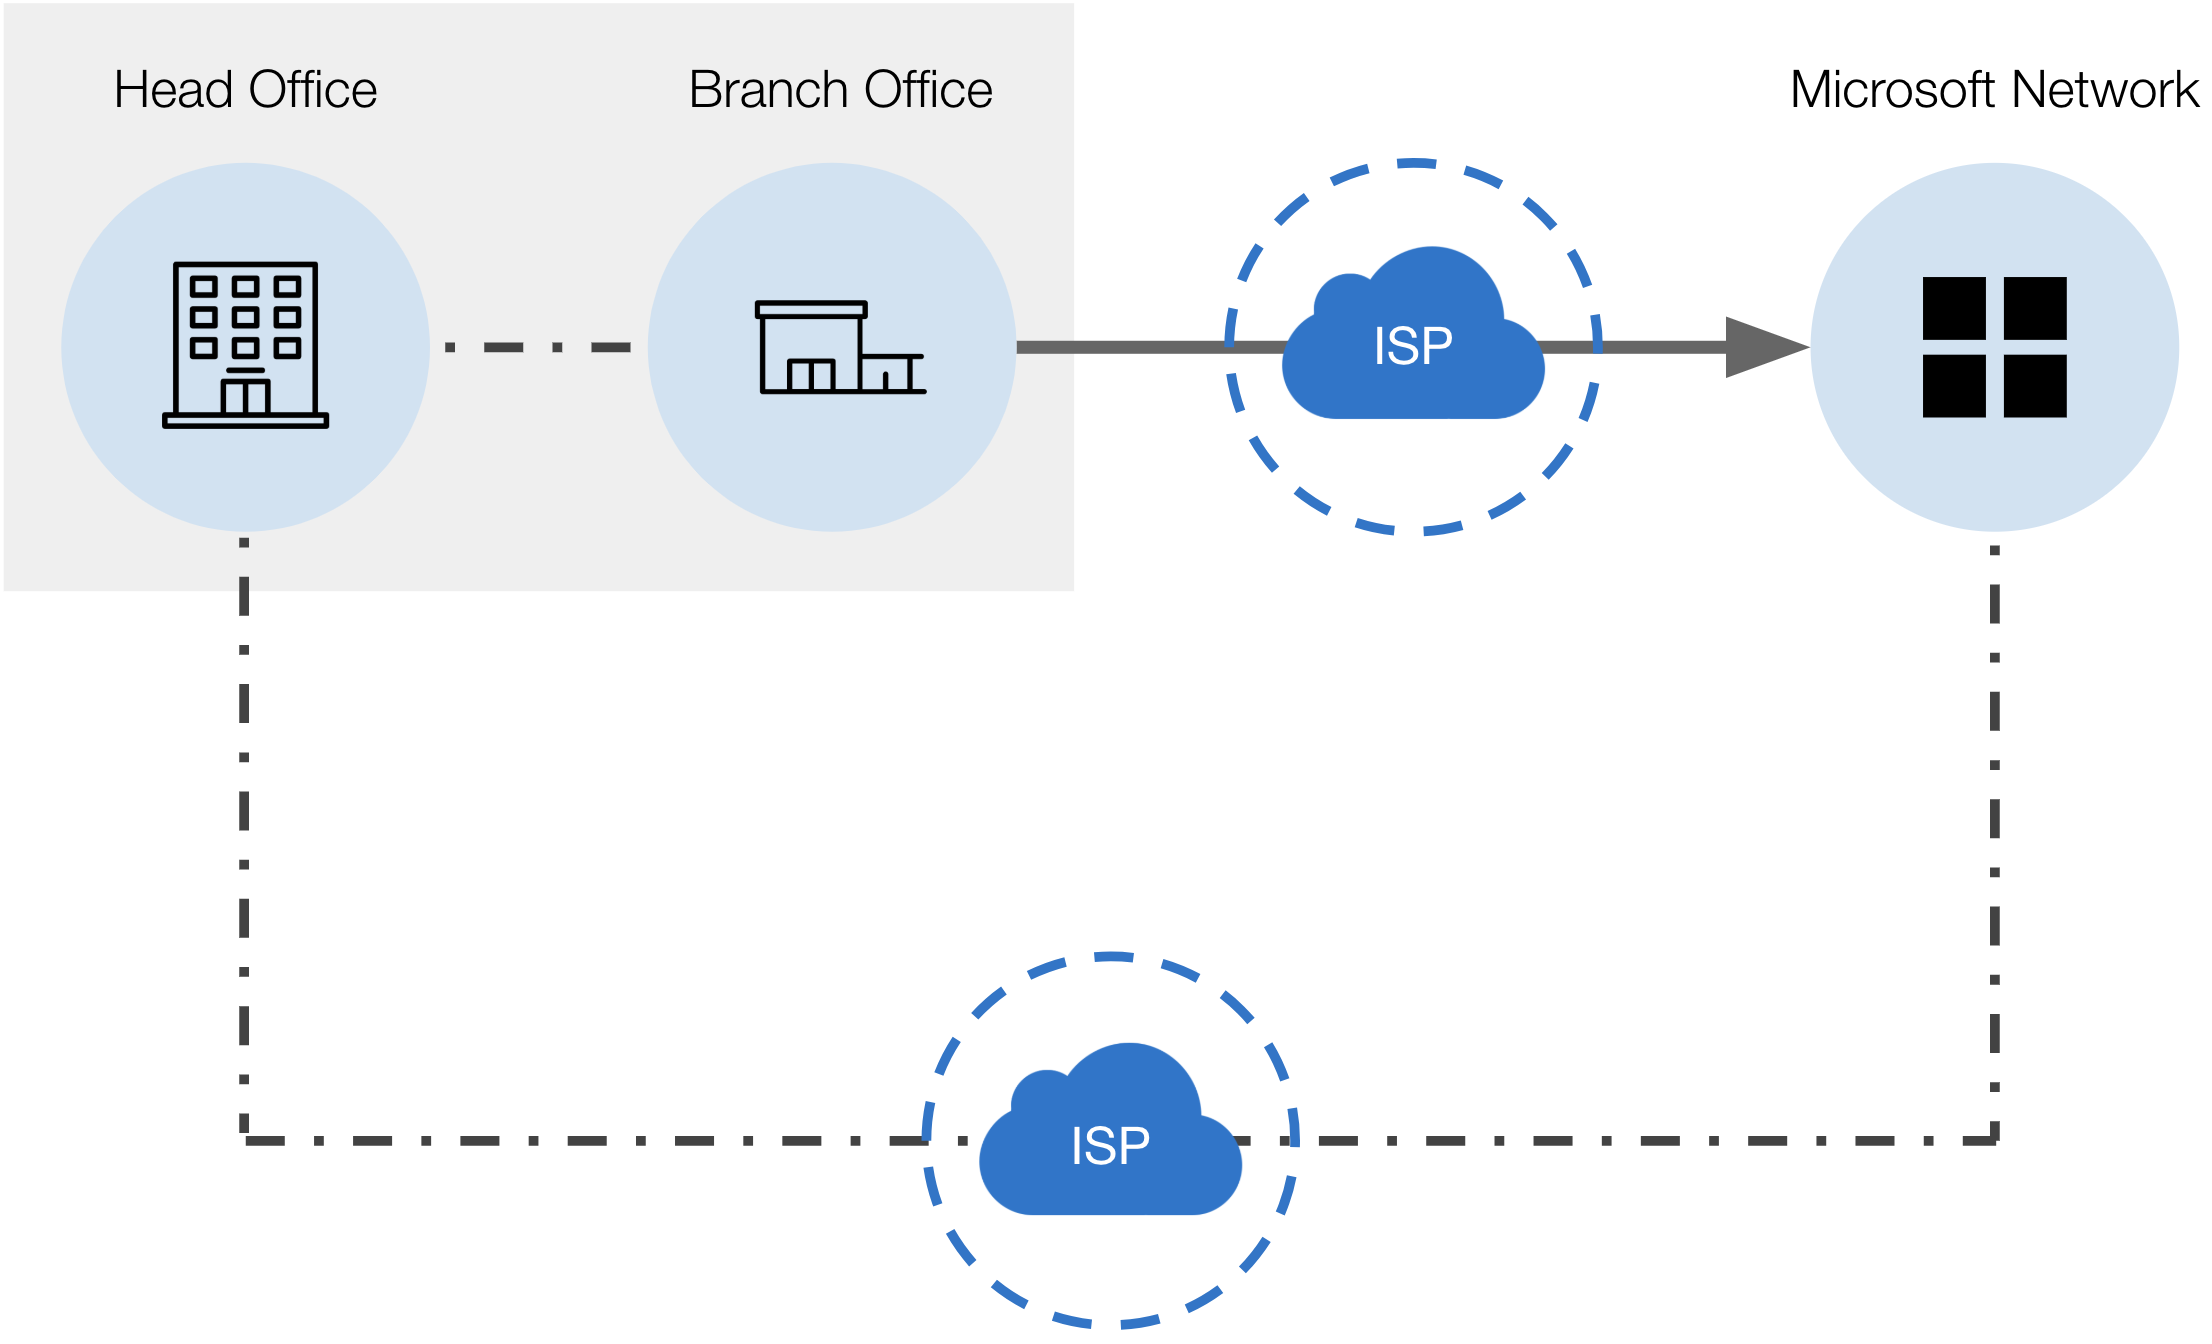 High performance network architecture for Office 365